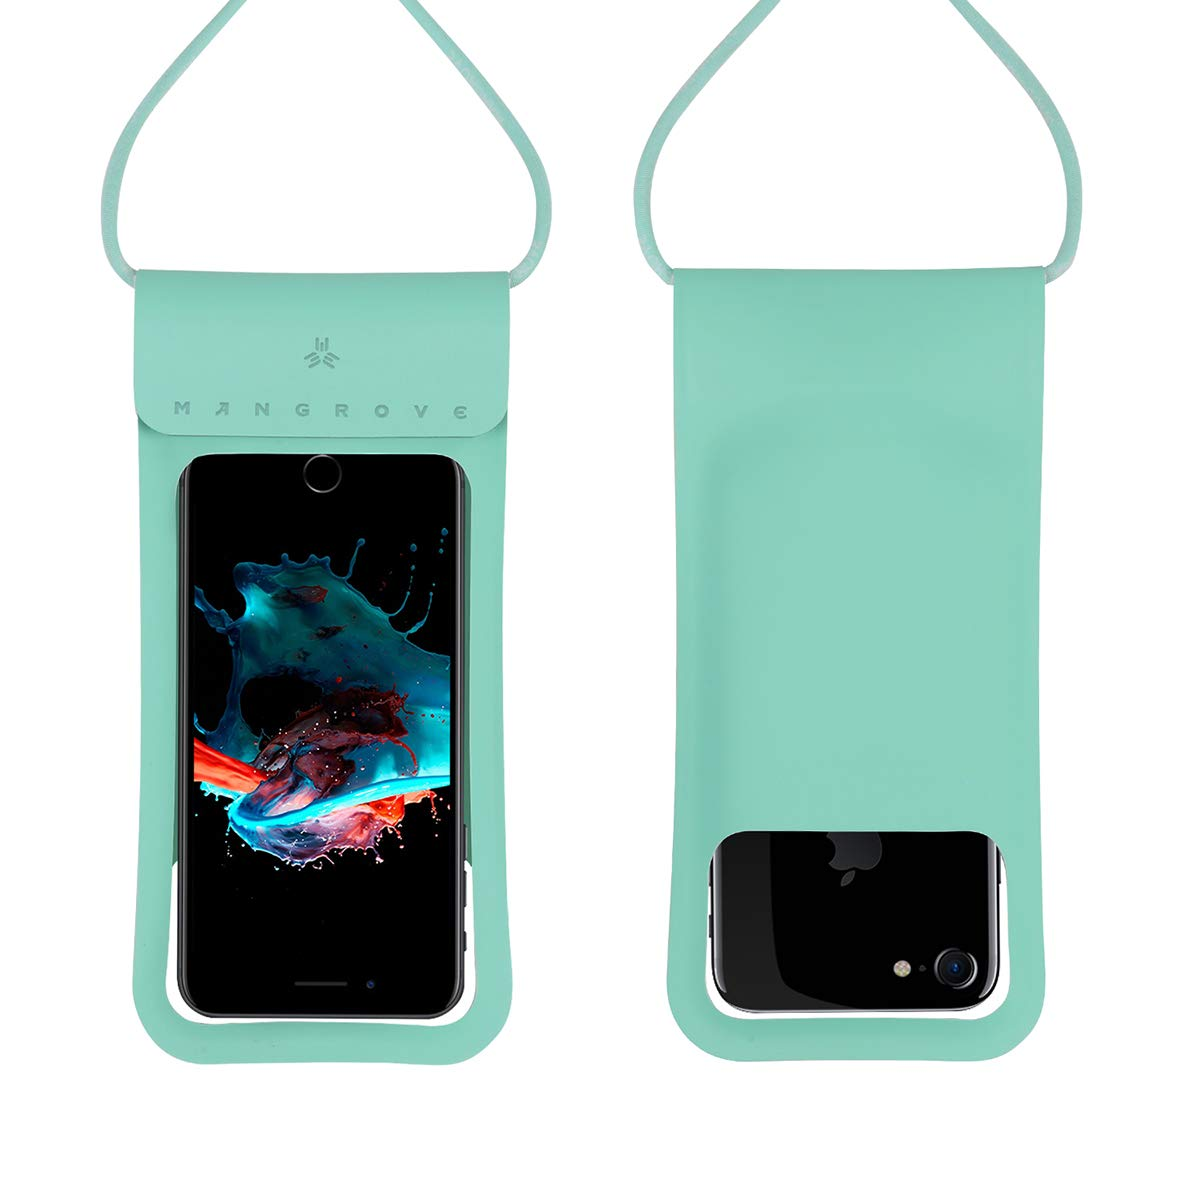 newest 82077 62649 Waterproof Case Cell Phone Dry Bag for iPhone X Plus, 8, 8 Plus, 7, 7plus,  6, 6s, 6s Plus, Samsung Galaxy Note 8, S9, S8, S8 Plus, 5-6 Inch Water ...